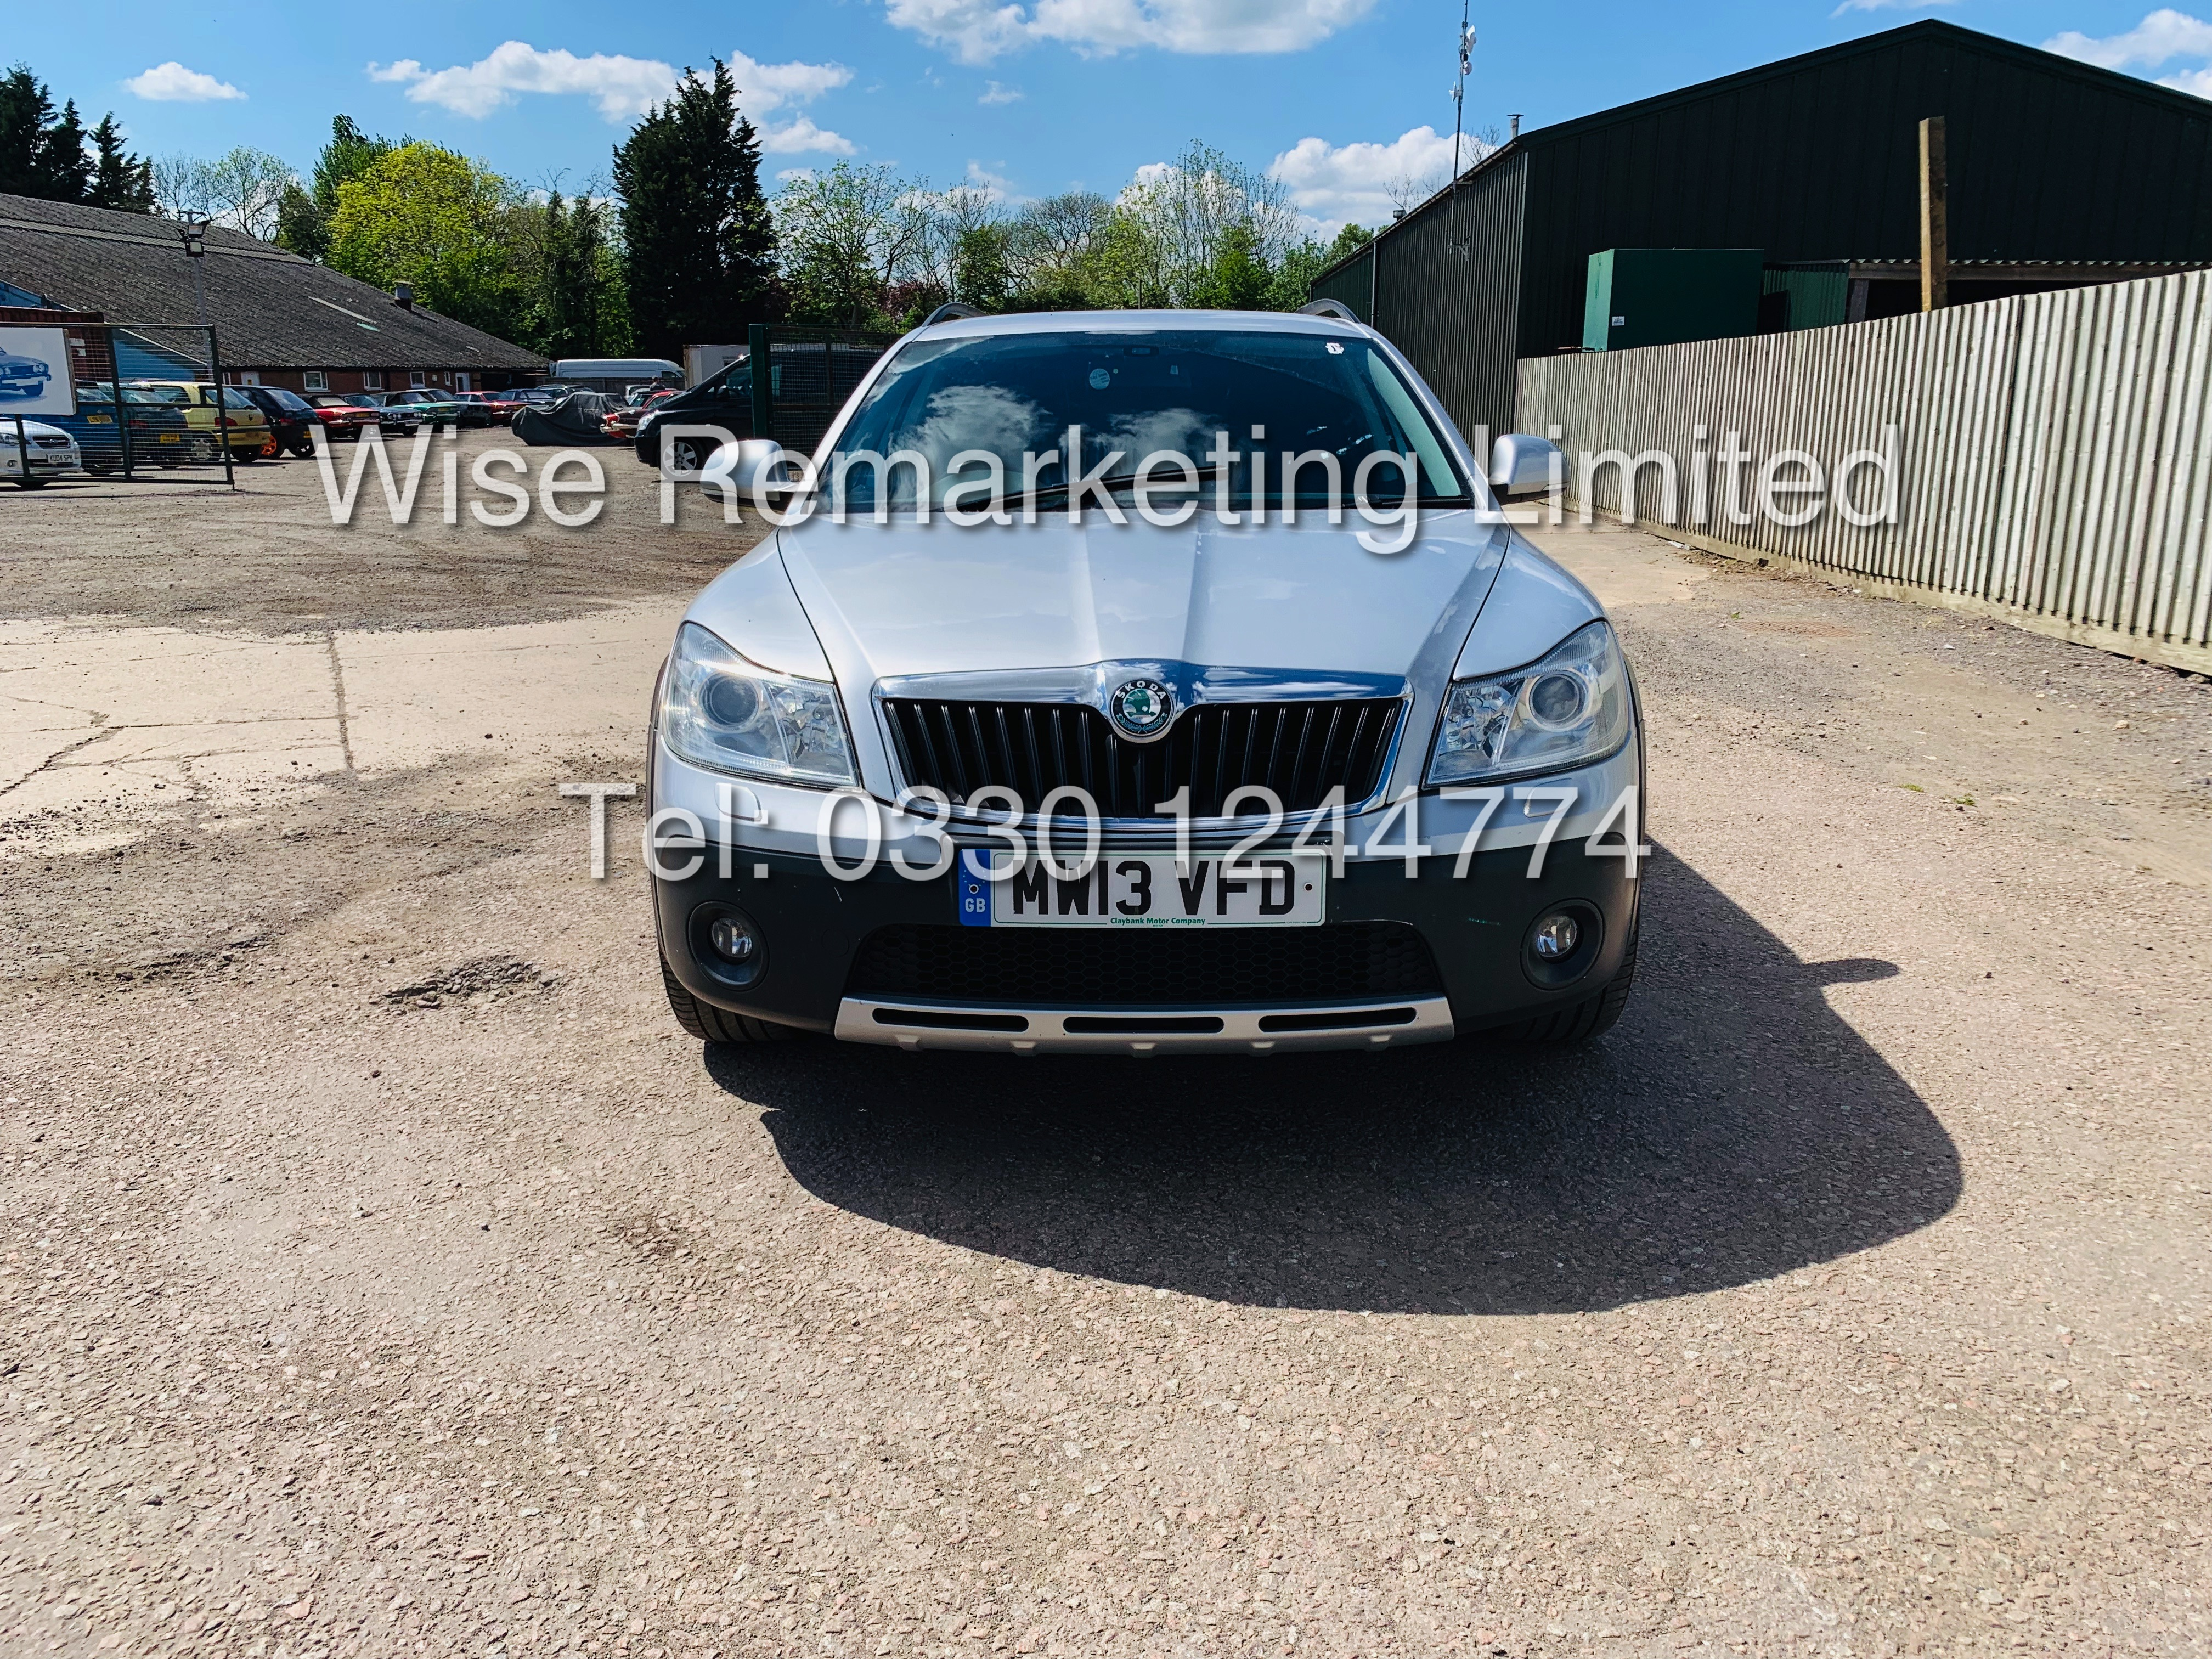 SKODA OCTAVIA (SCOUT) 2.0tdi DSG AUTOMATIC ESTATE / 2013 / 1 OWNER WITH FULL HISTORY / 140BHP - Image 6 of 14